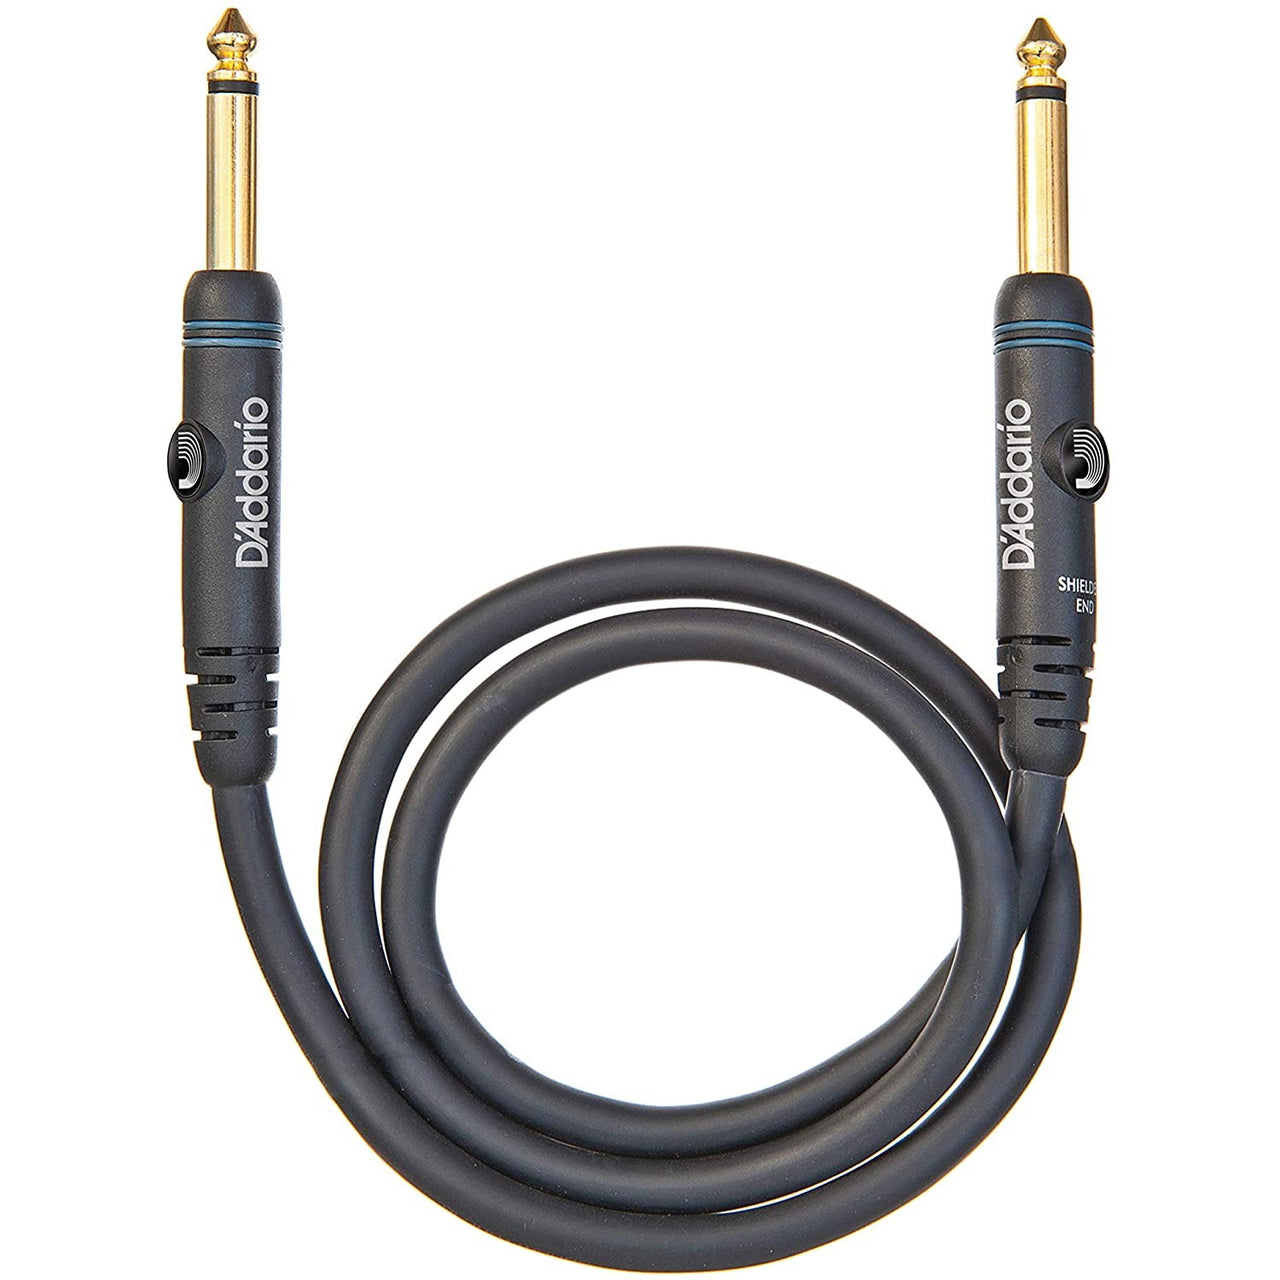 D'Addario Custom Series Patch Cable - 6inches (15cm)